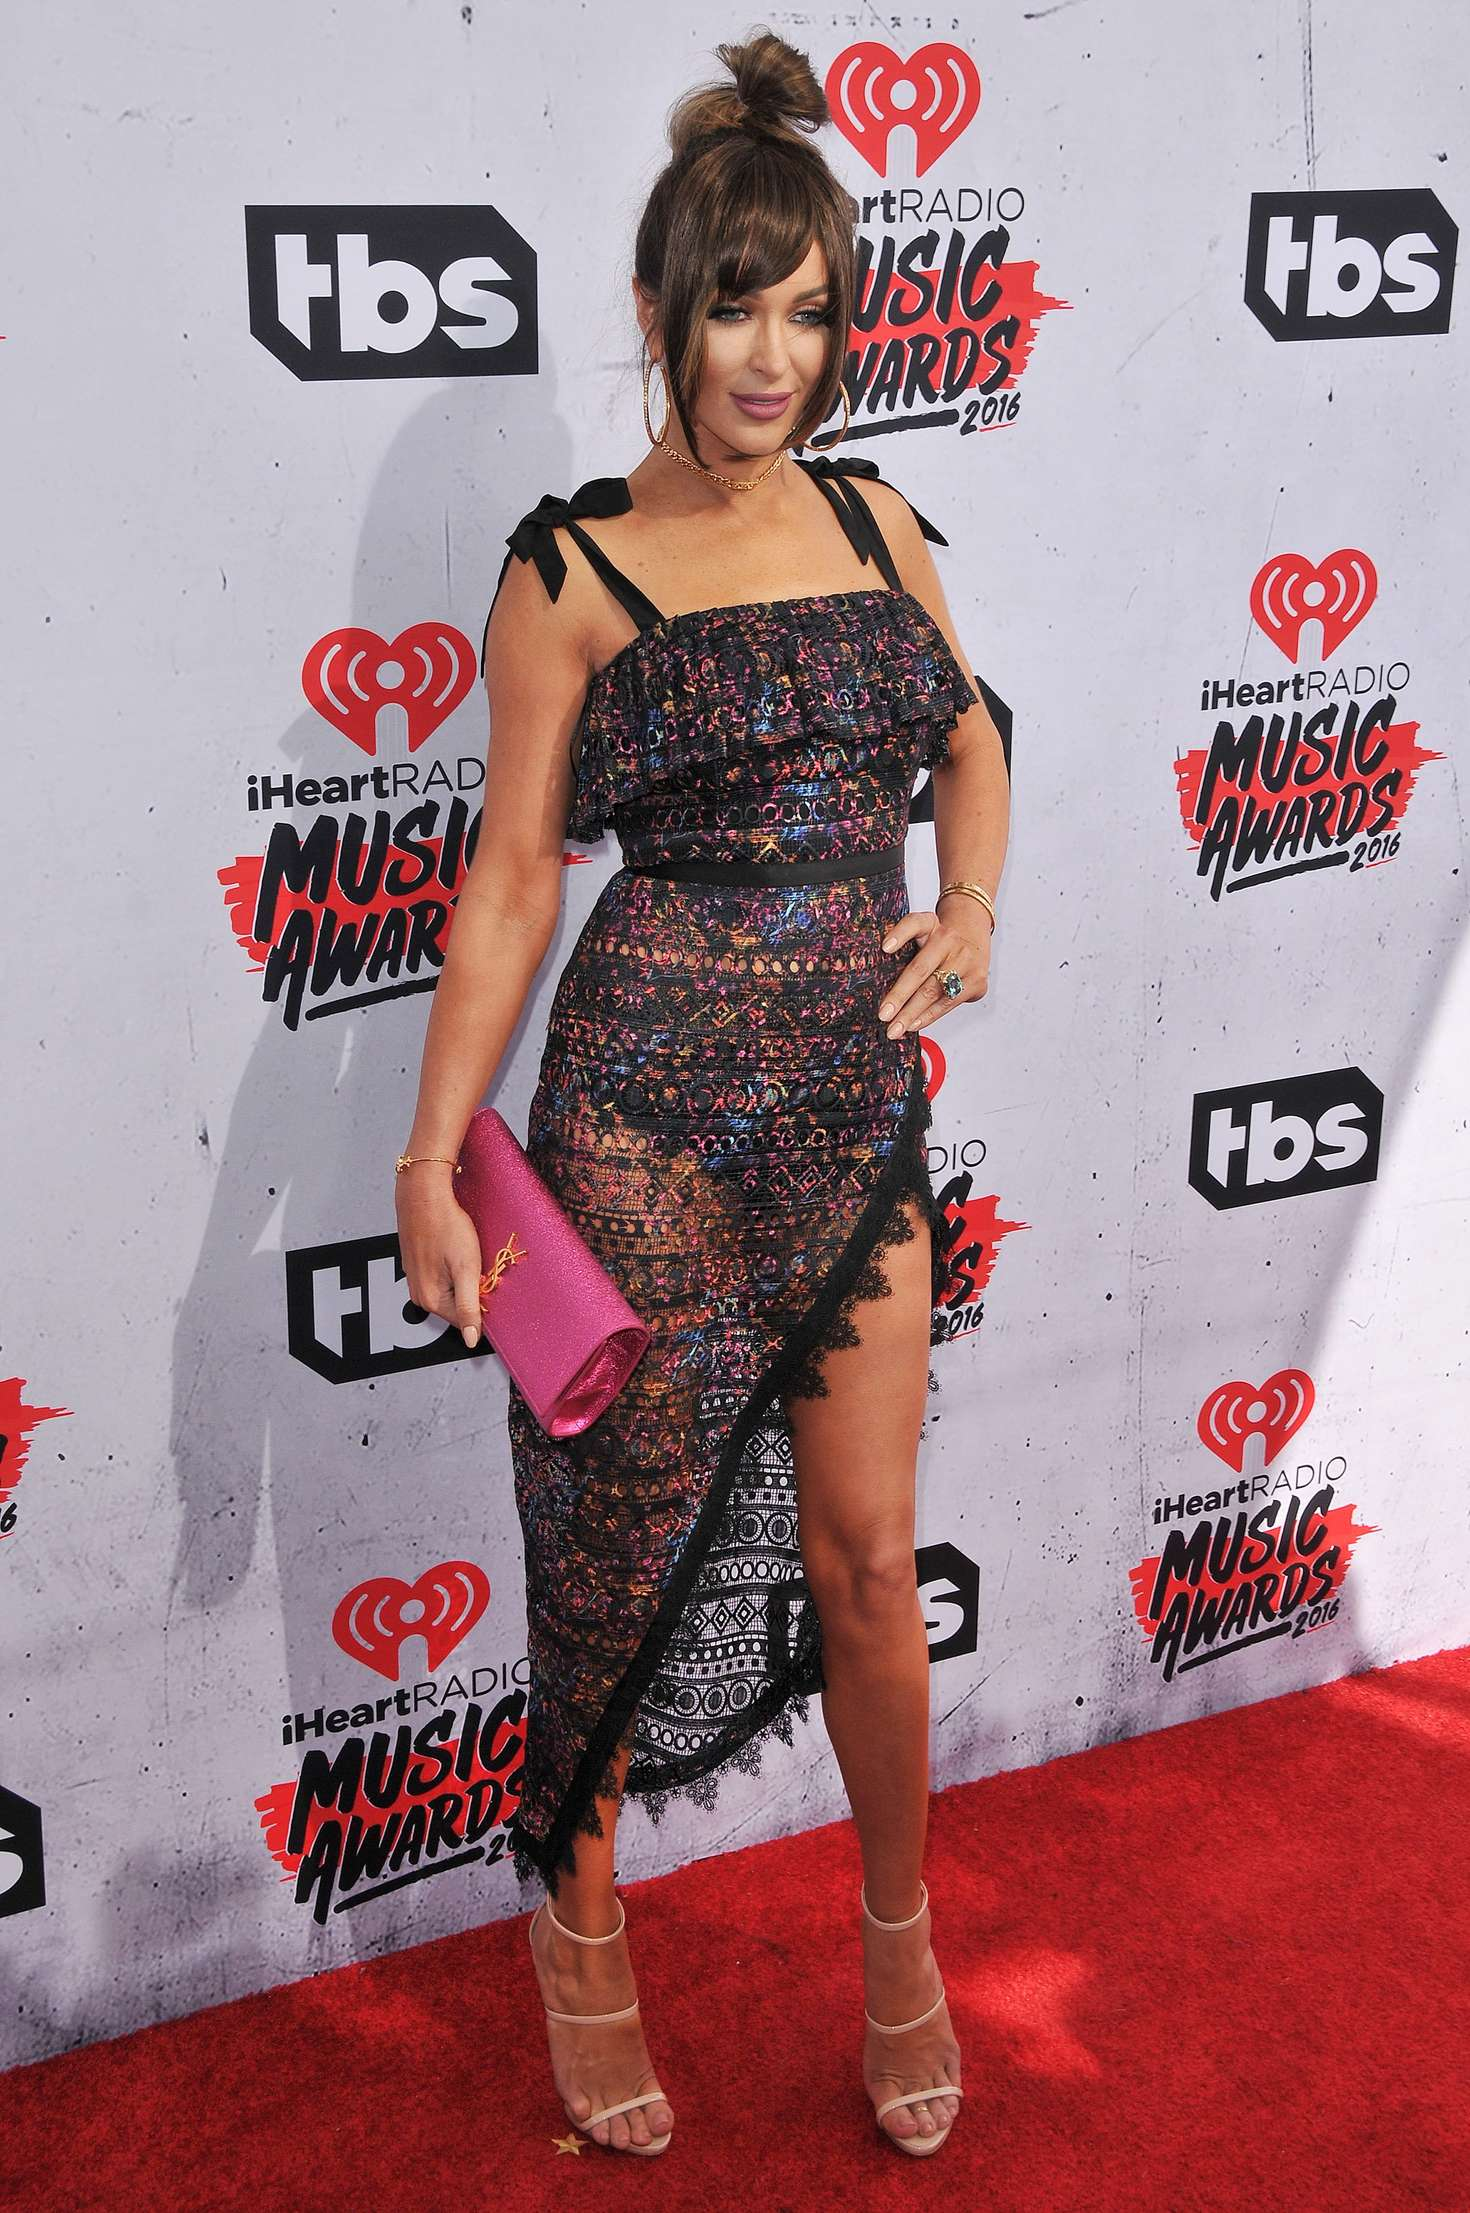 Courtney Sixx iHeartRadio Music Awards in Los Angeles